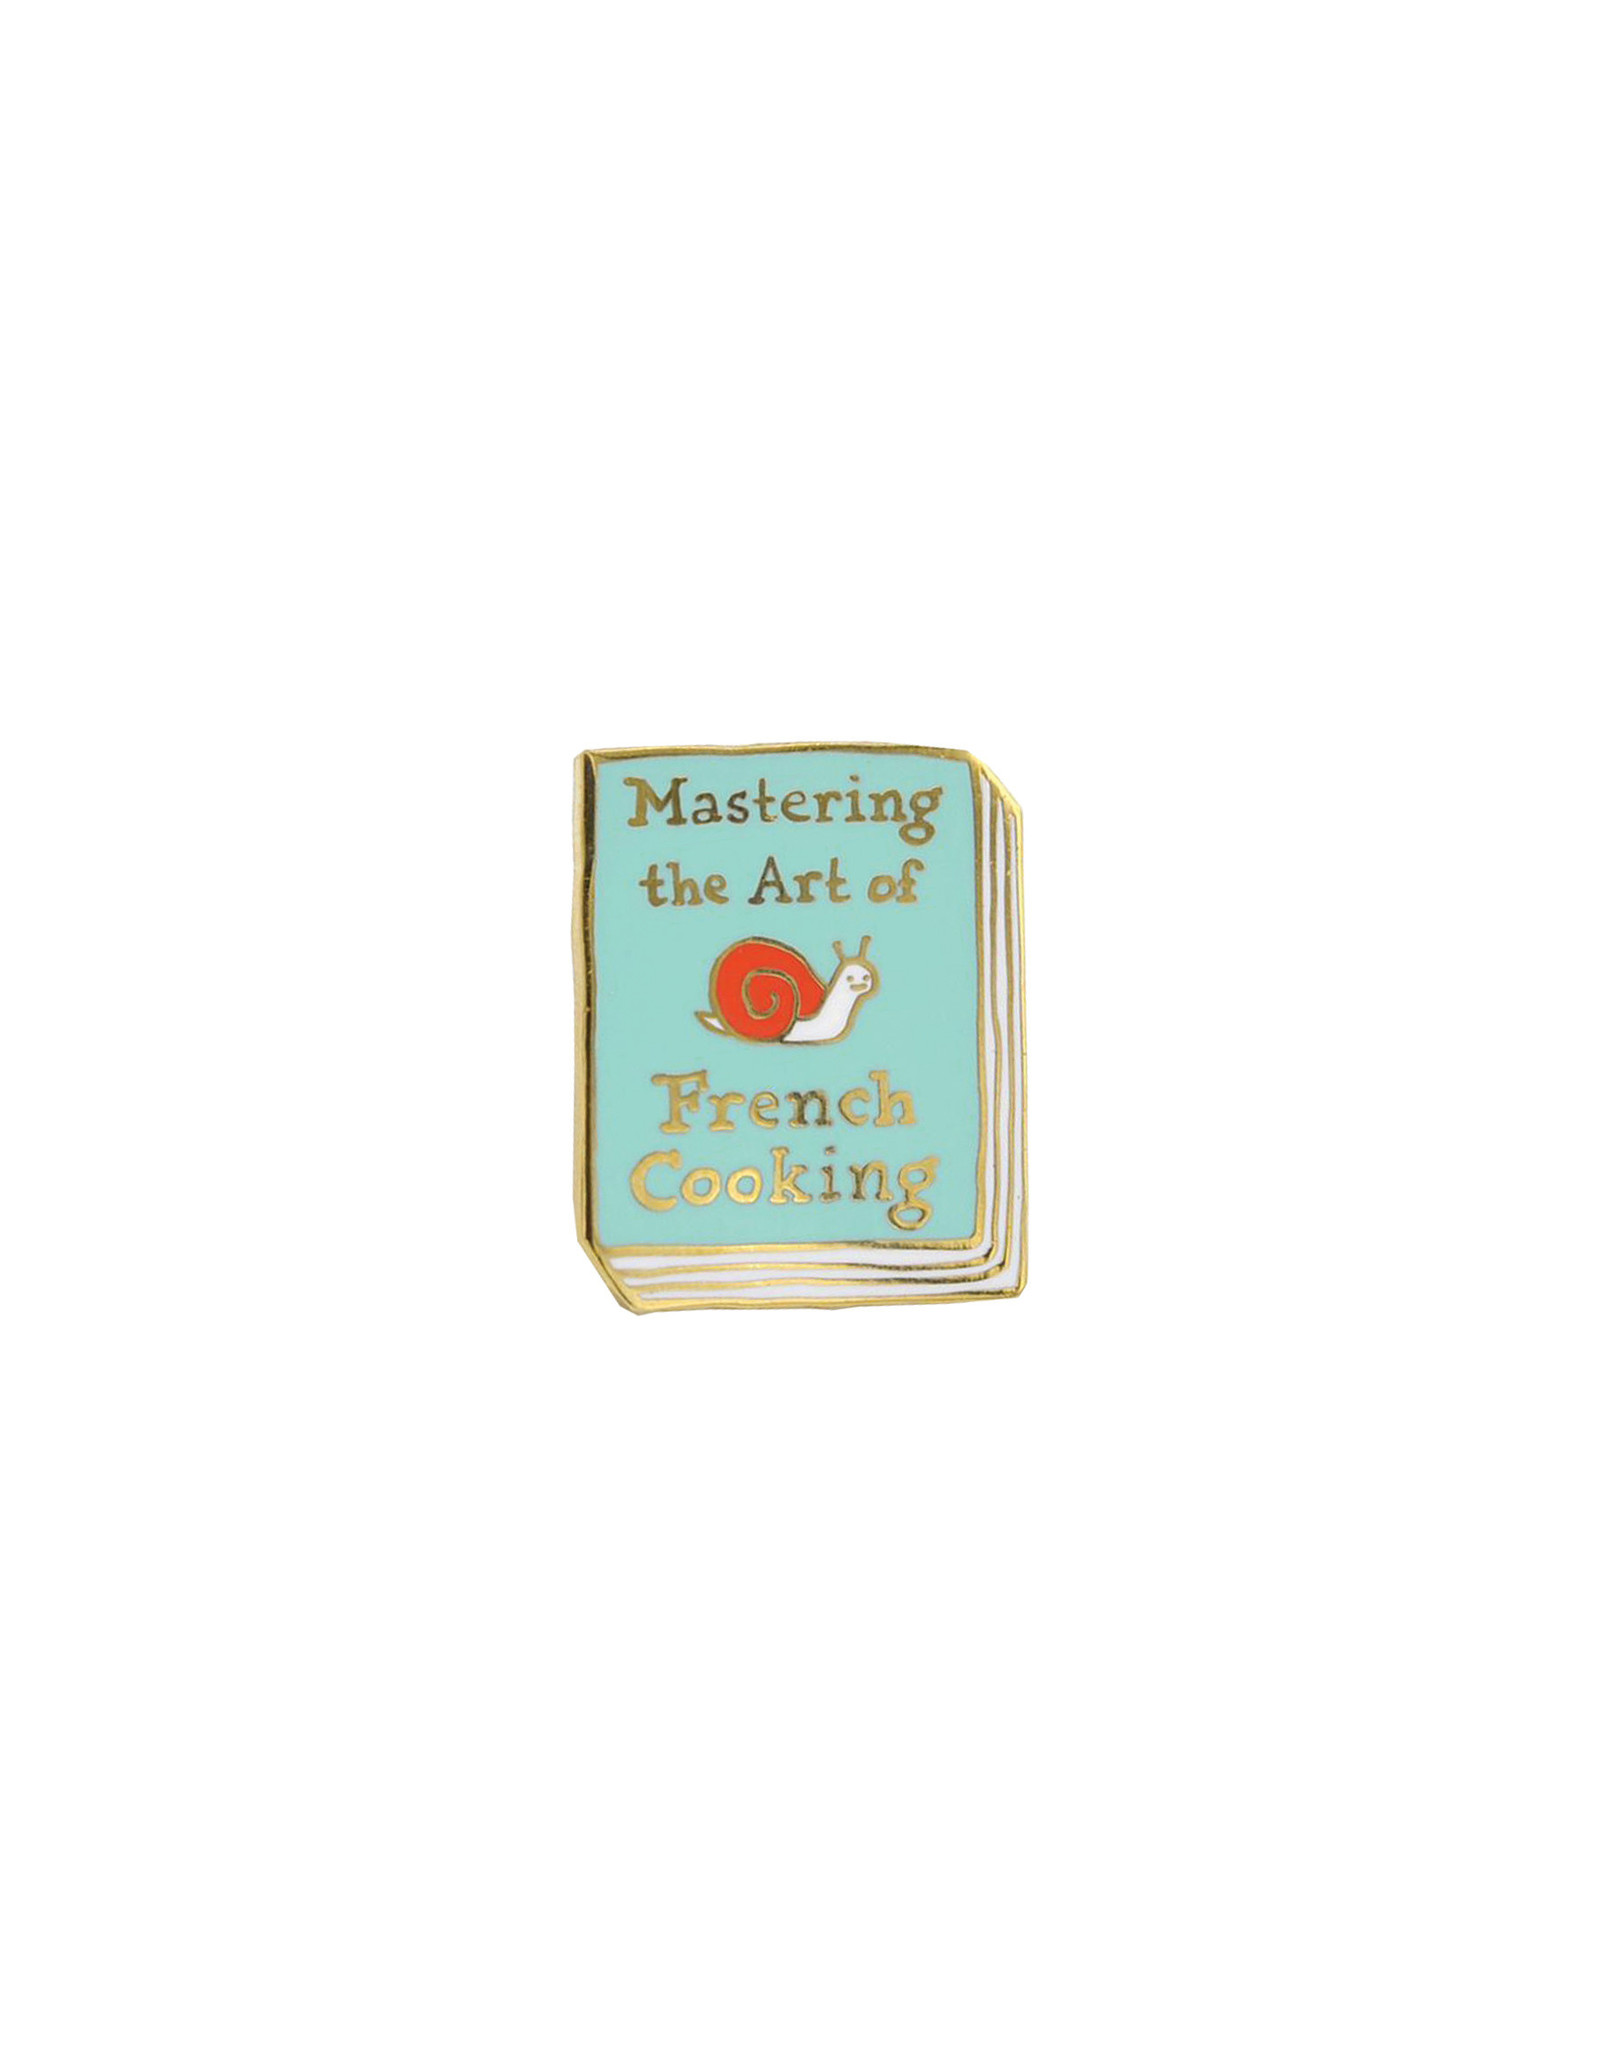 Ideal Bookshelf Book Pin: Mastering the Art of French Cooking